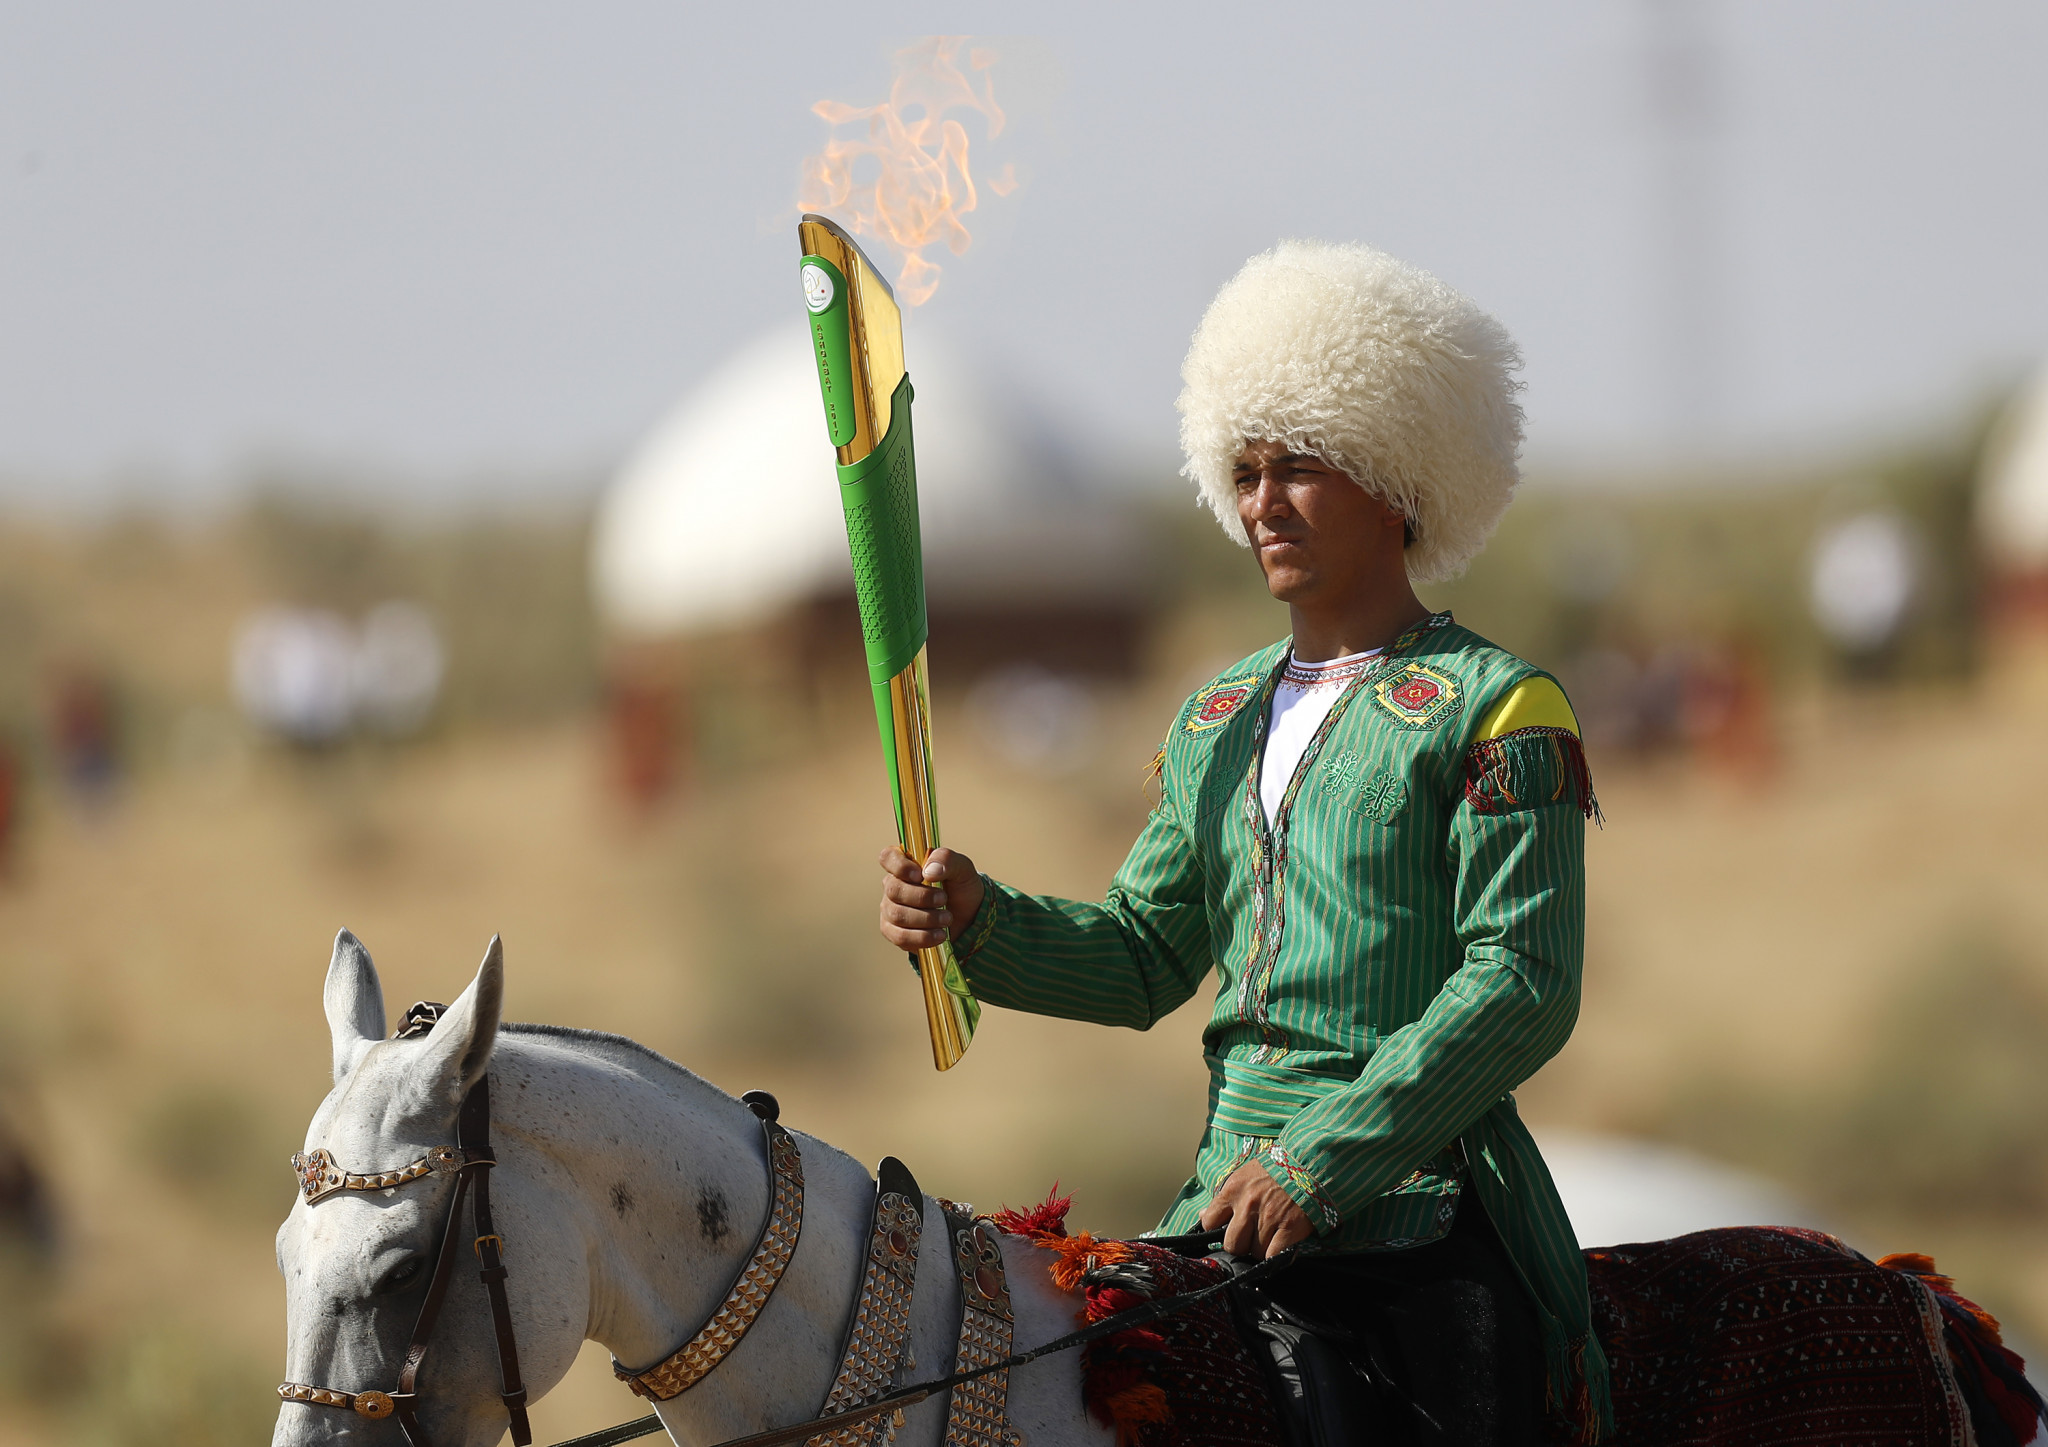 Torch lighting ceremony held for Ashgabat 2017